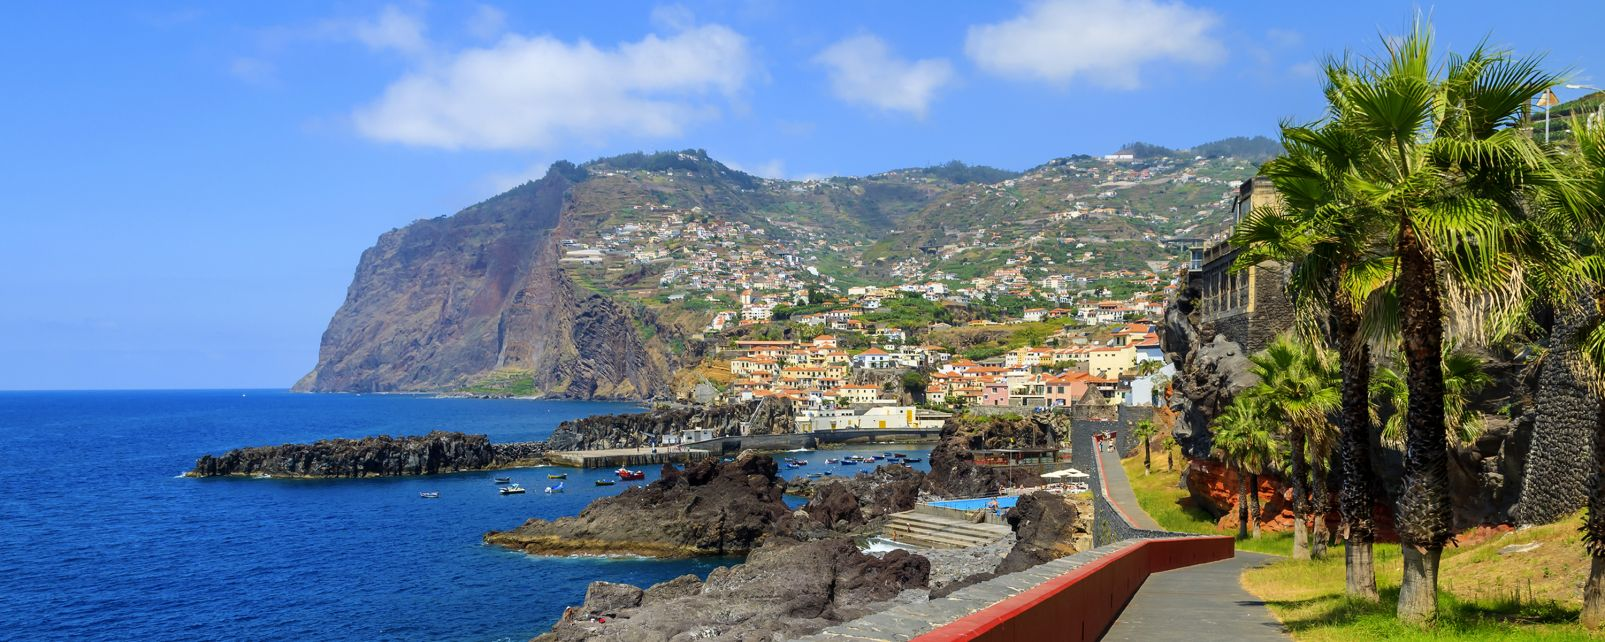 Local colours, Camara de Lobos, Coasts, Madeira